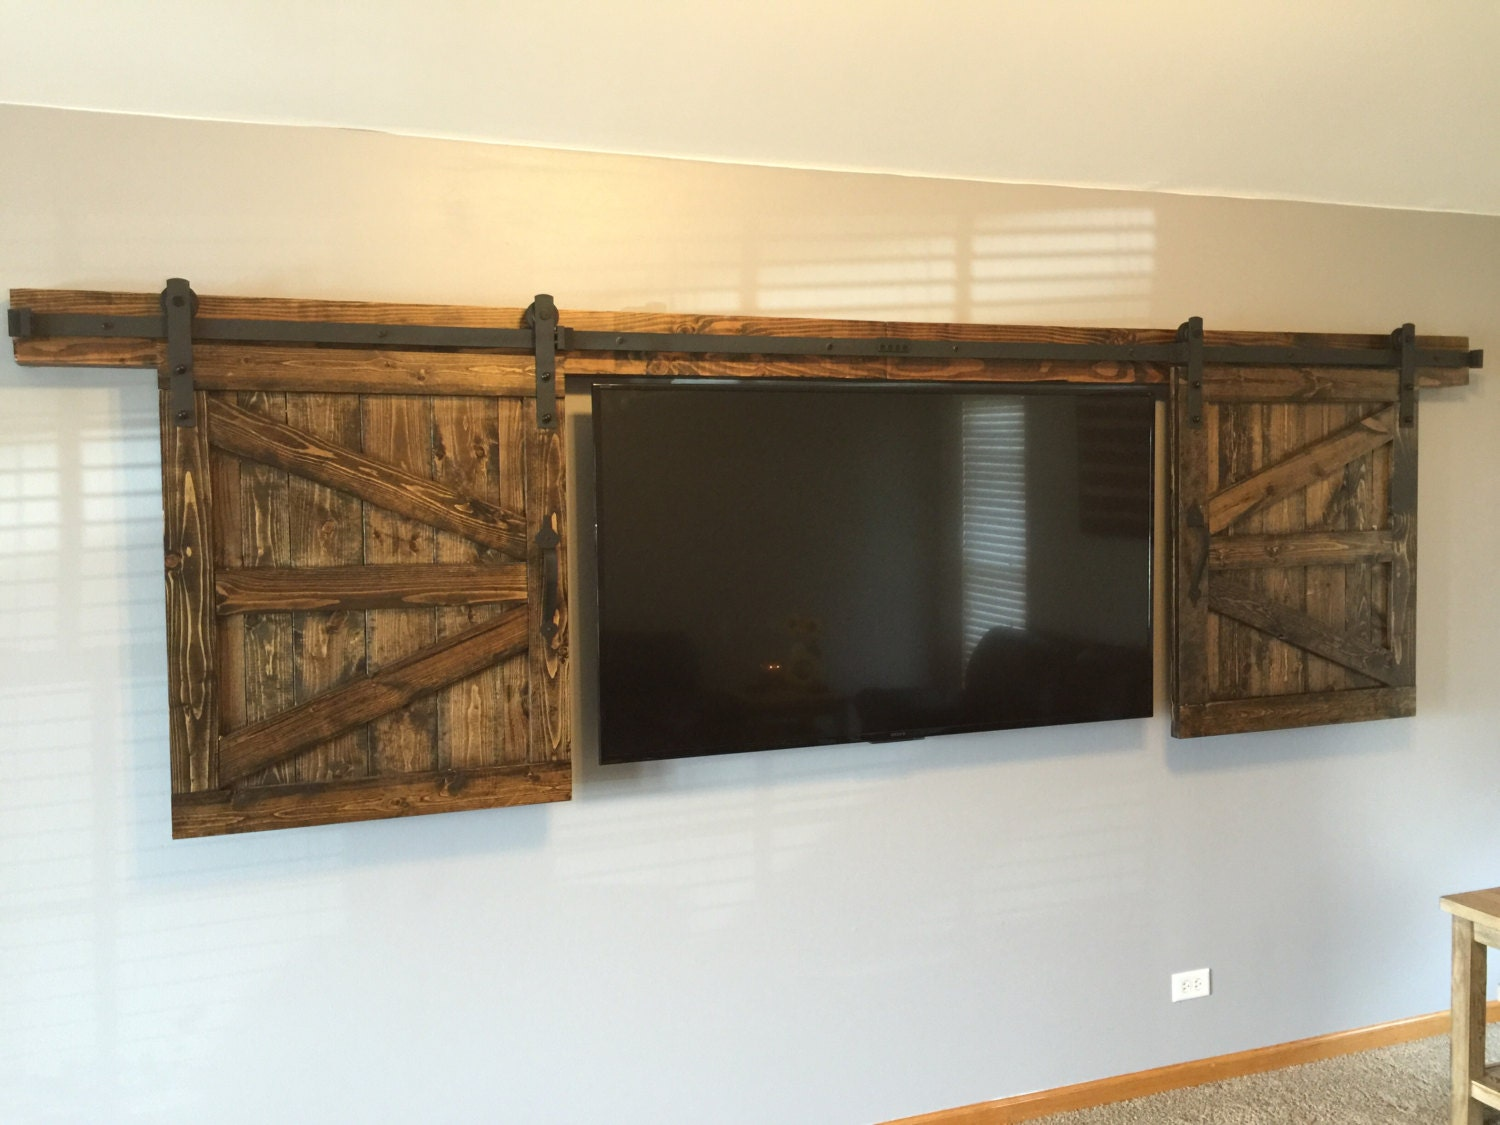 TV Hide Barn Door Set - Rustic TV Barn Door - Sliding Window - Interior - Sliding TV Cover - Barn Door Cabinet - Farmhouse Door : tv doors - pezcame.com